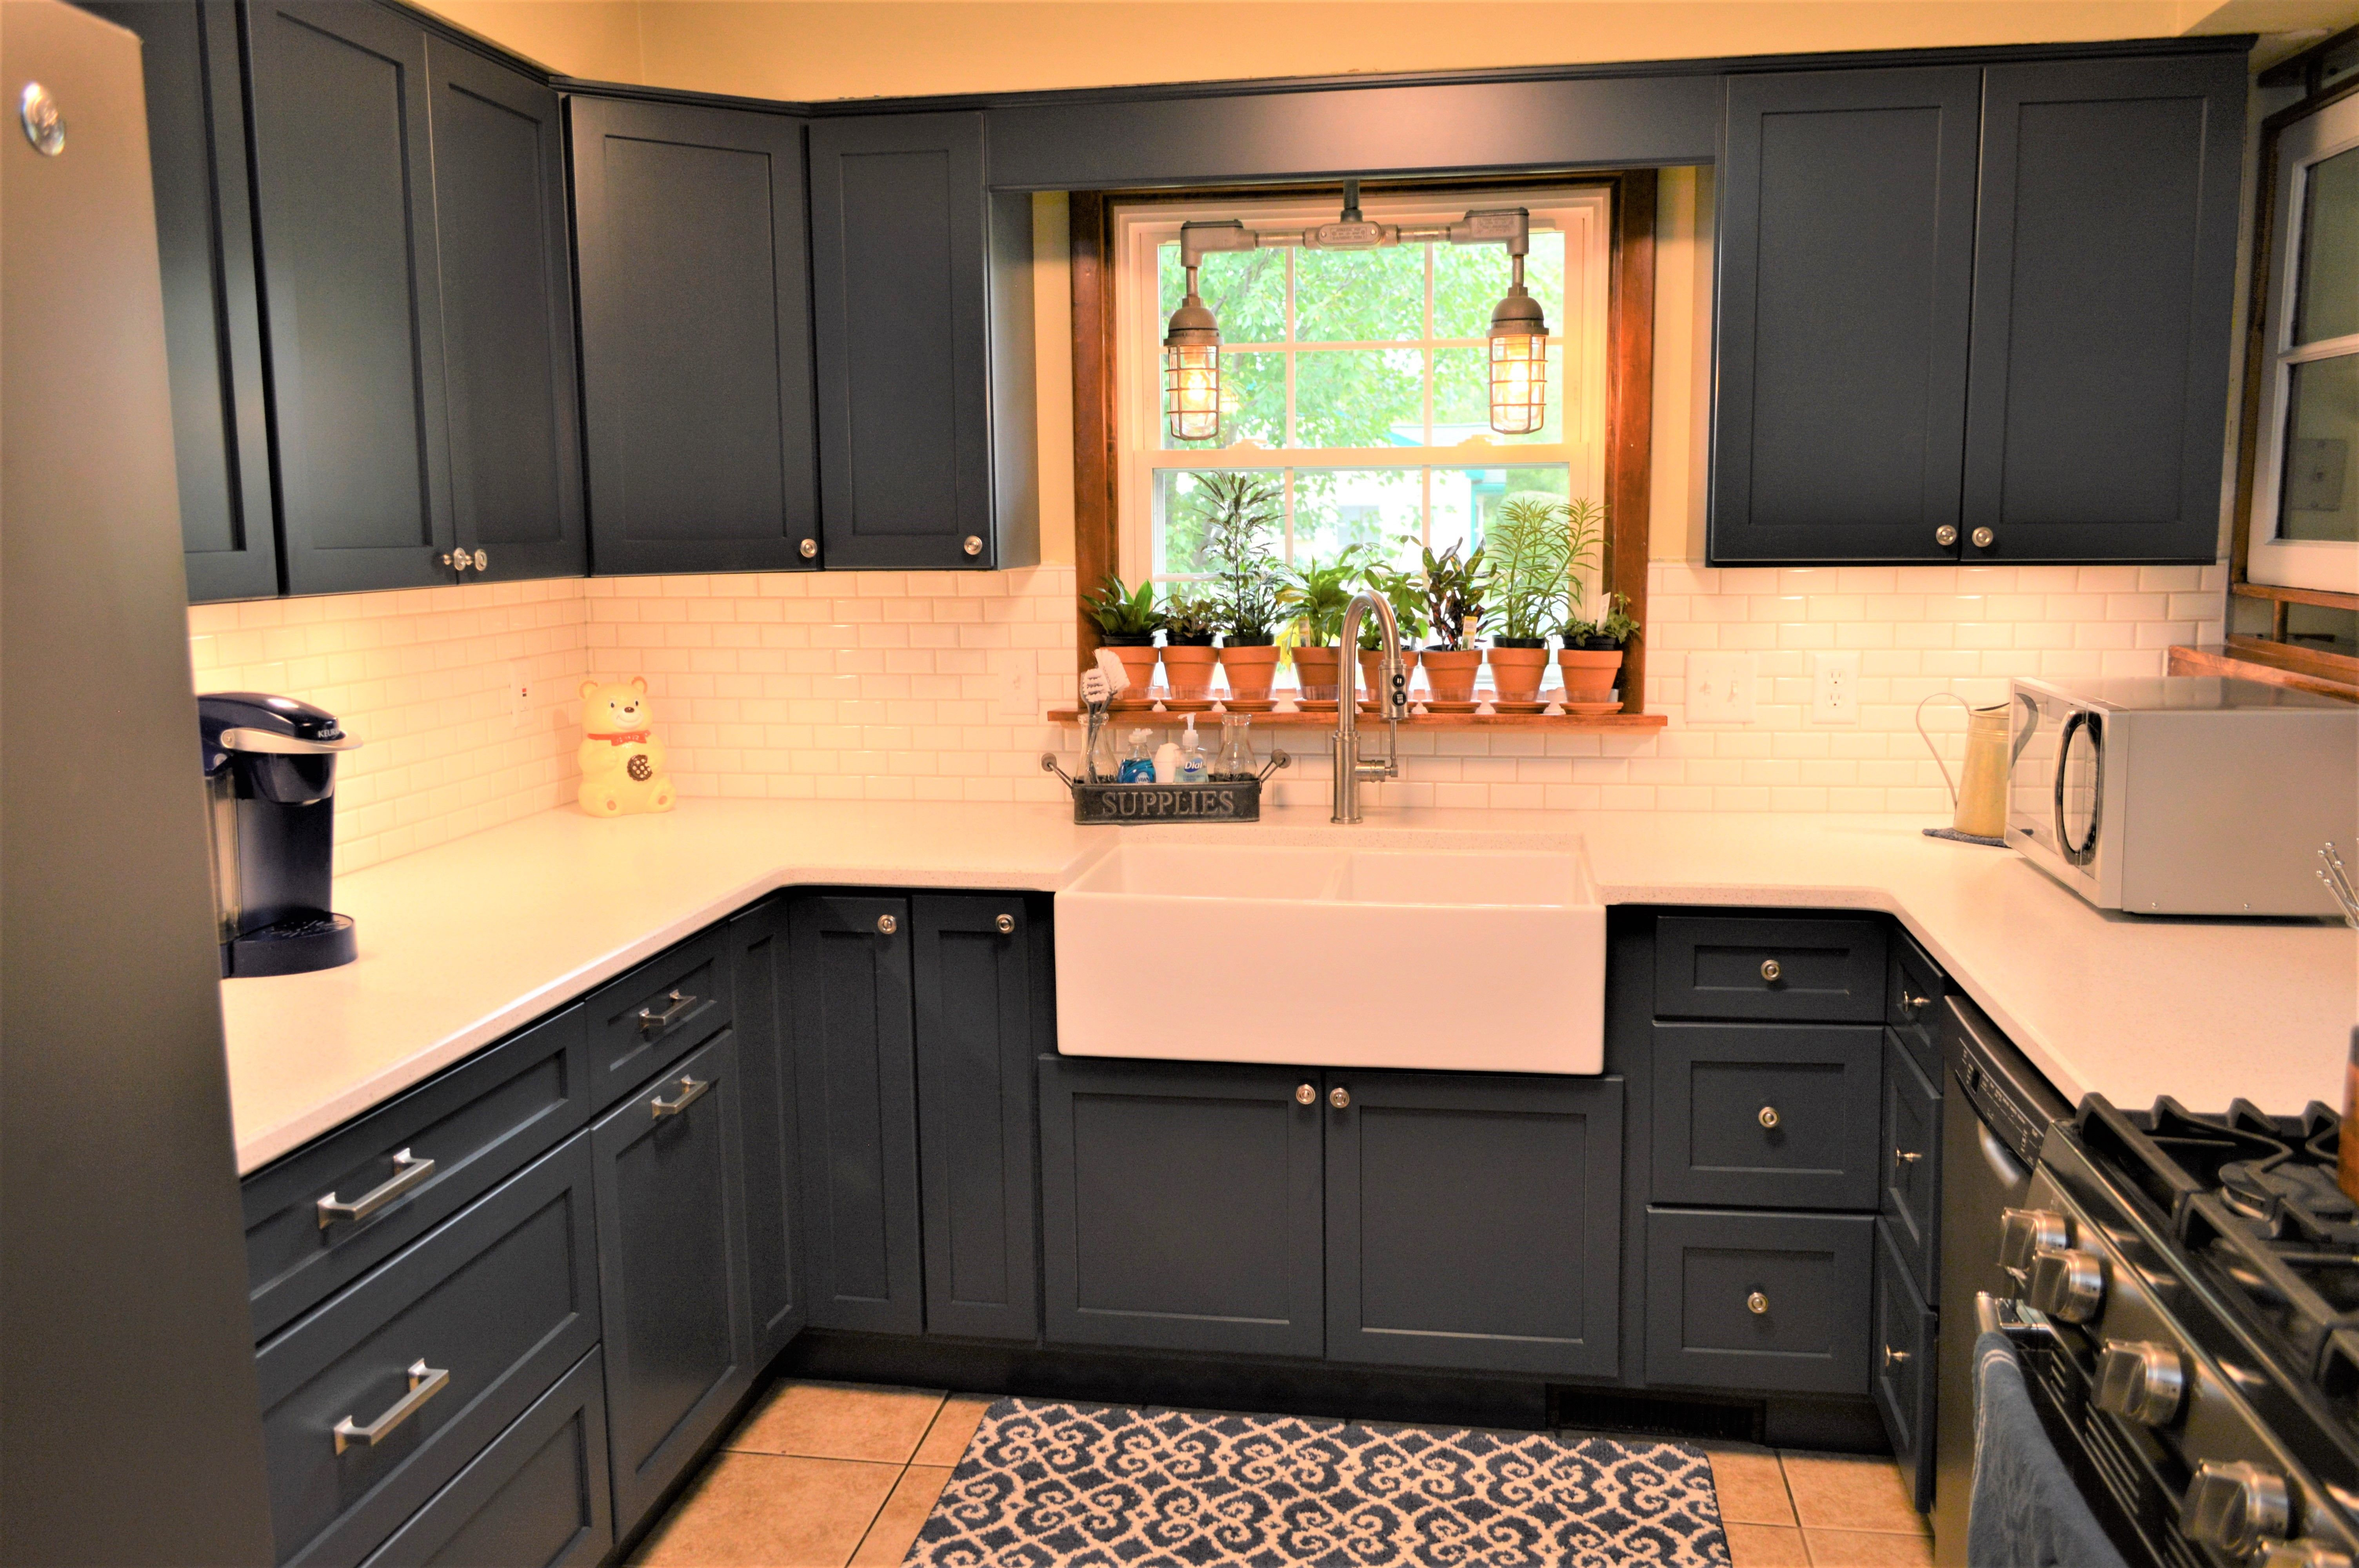 Pin on Painted Cabinetry: Bailey's Cabinet Customer Kitchens